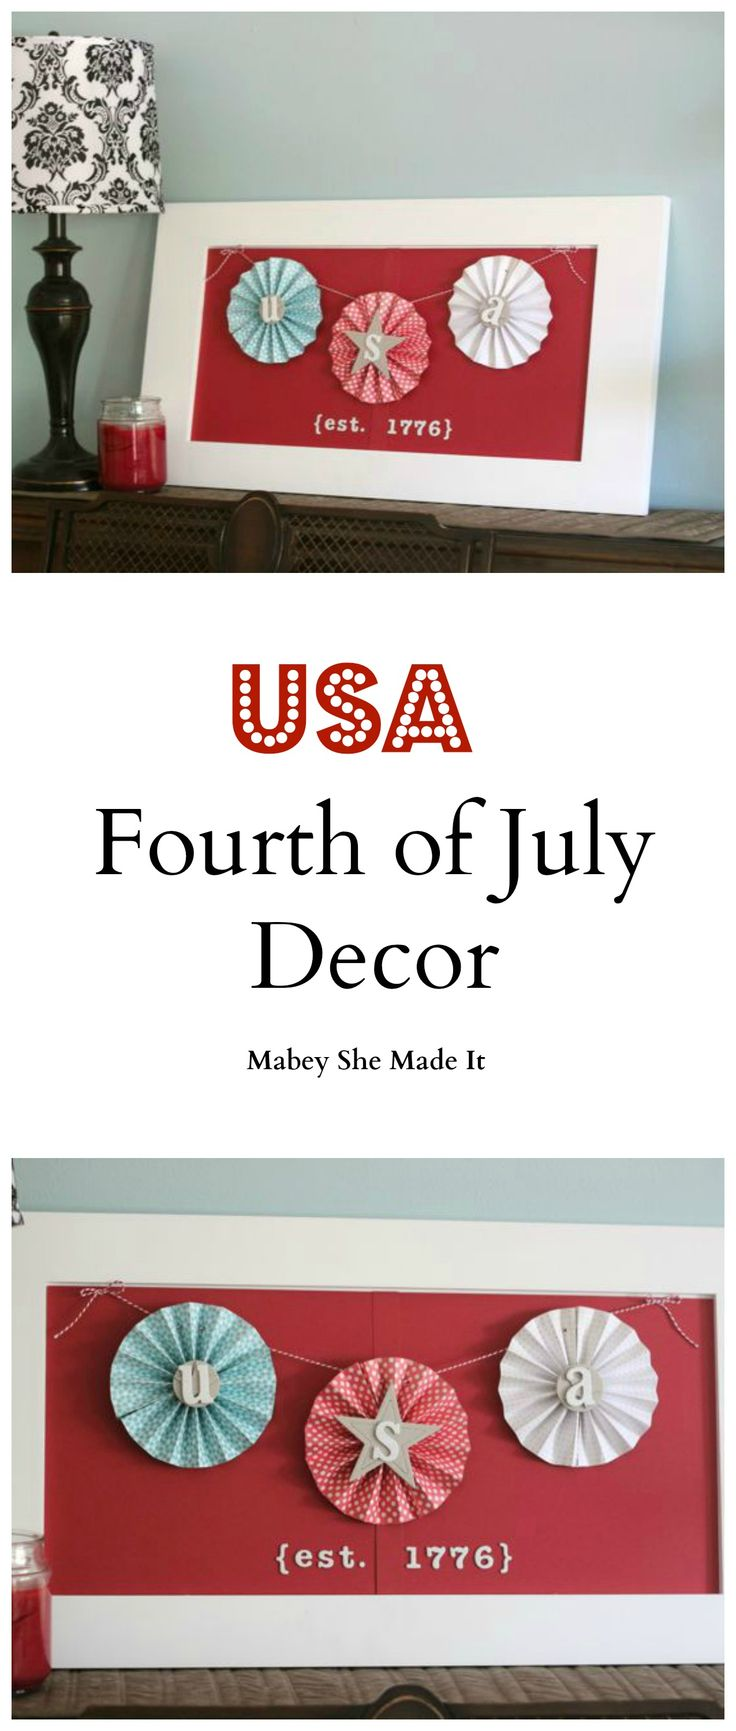 Looking to make your independence day home décor sparkle this year? Get ready for the Fourth of July with these festive medallions by Mabey She Made It.